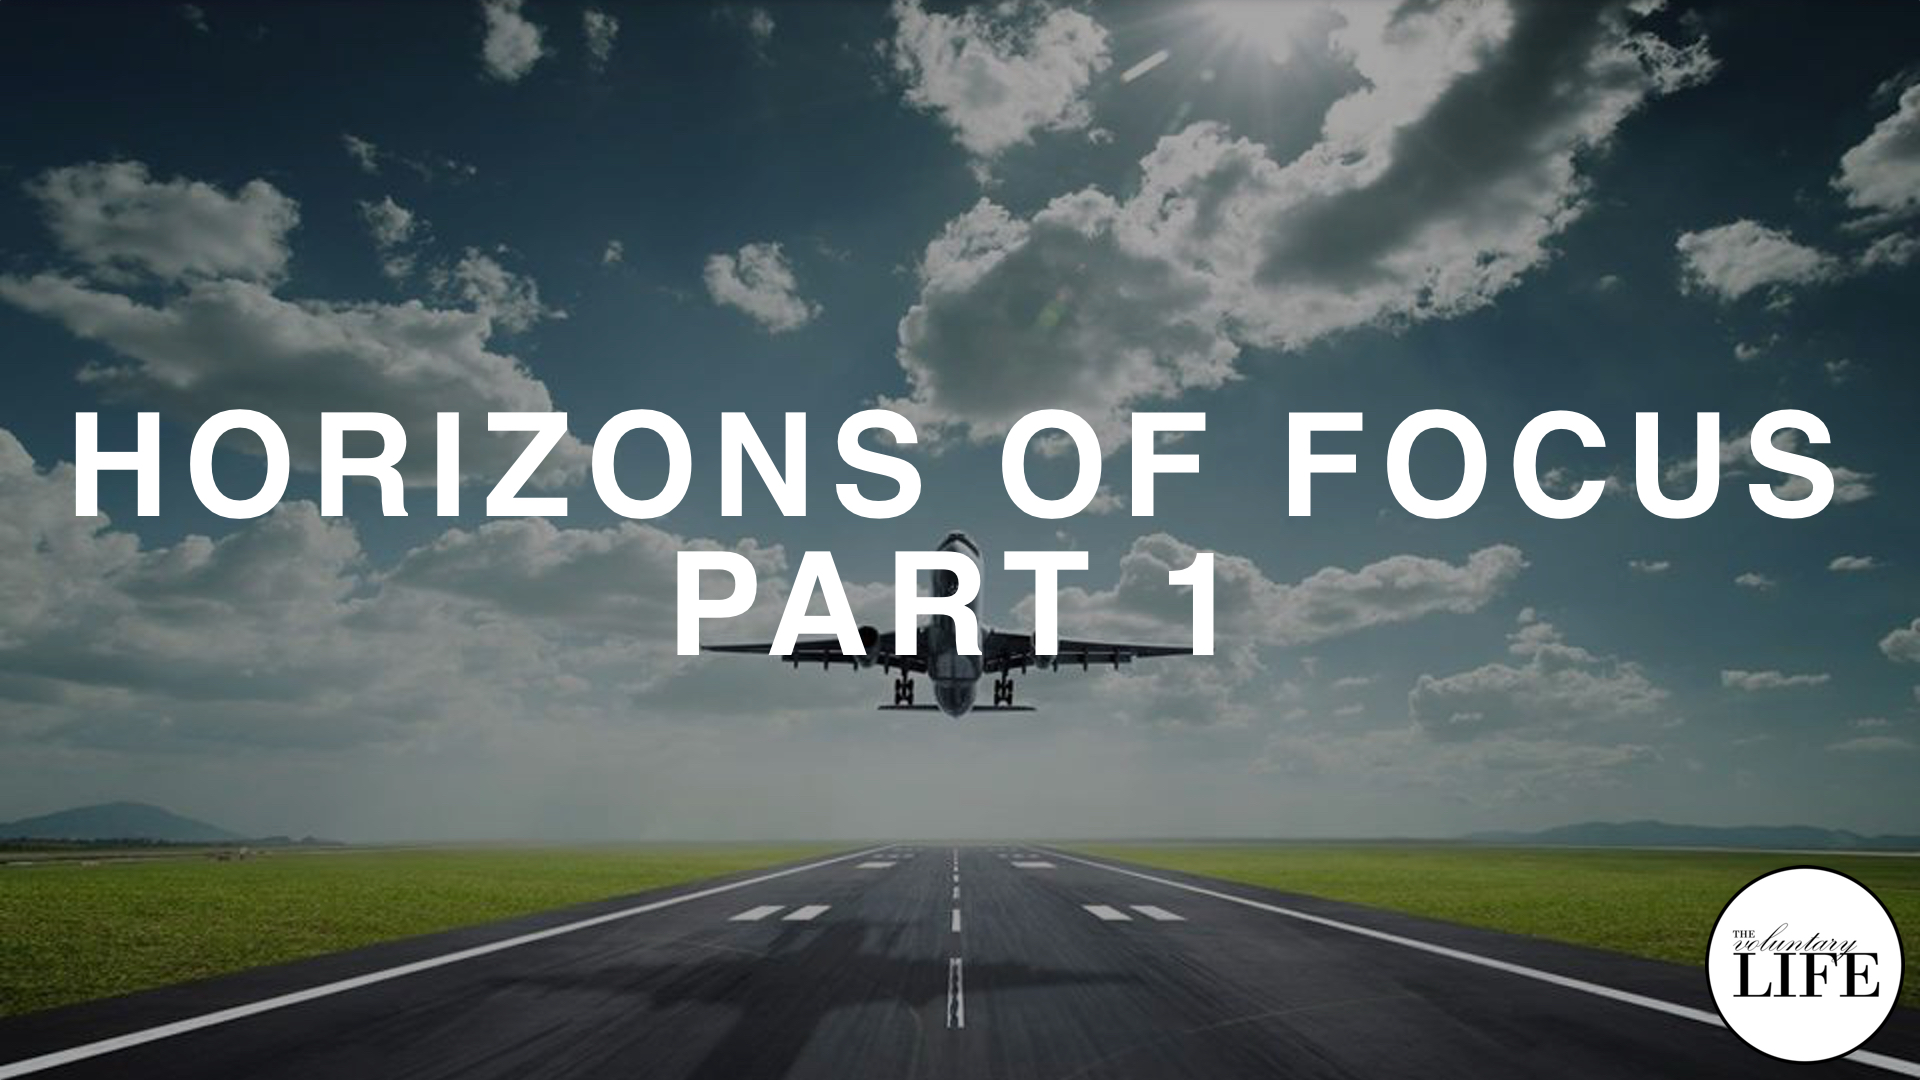 232 The Next Level — Horizons of Focus Part 1